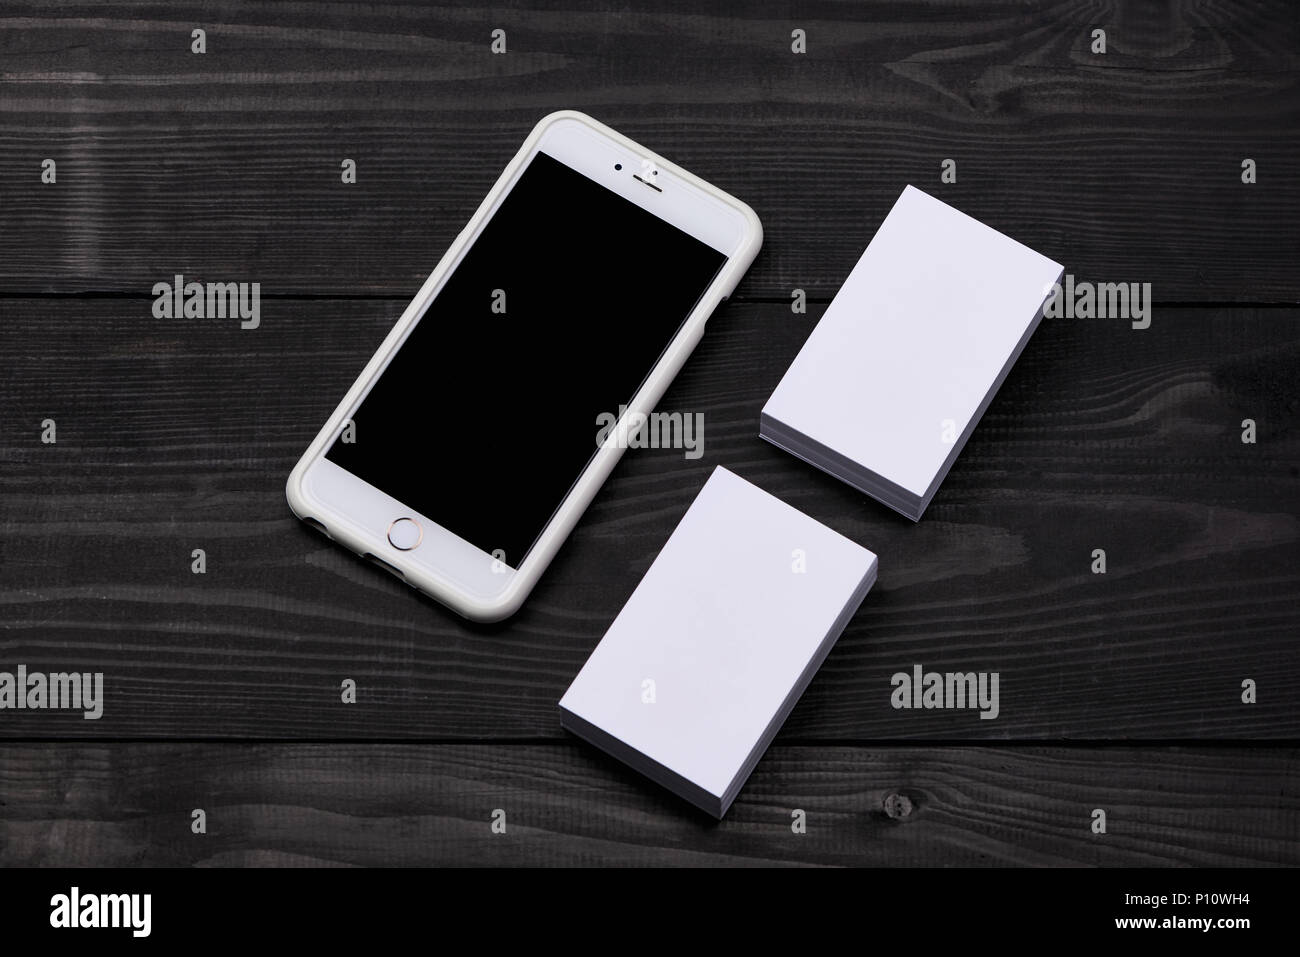 Business card and phone blank mockup stock photos business card mockup of cellphone with blank screen and business cards stock image reheart Images